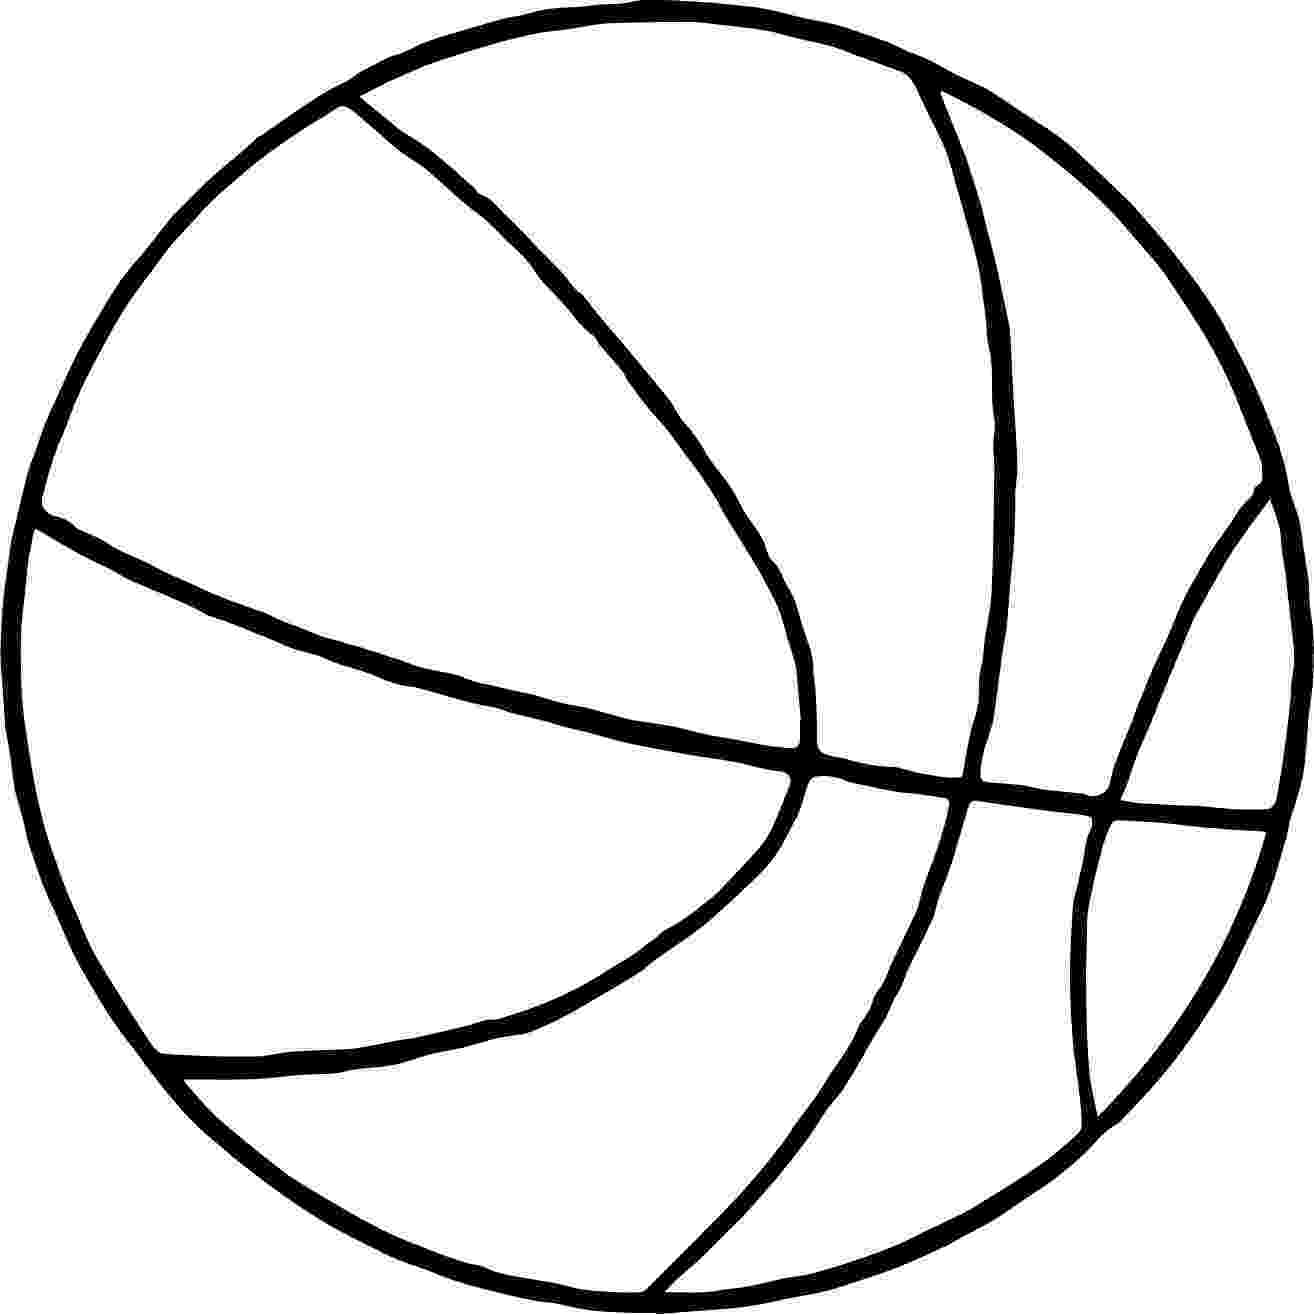 colouring sheet of ball thin basketball ball coloring page wecoloringpagecom of colouring sheet ball